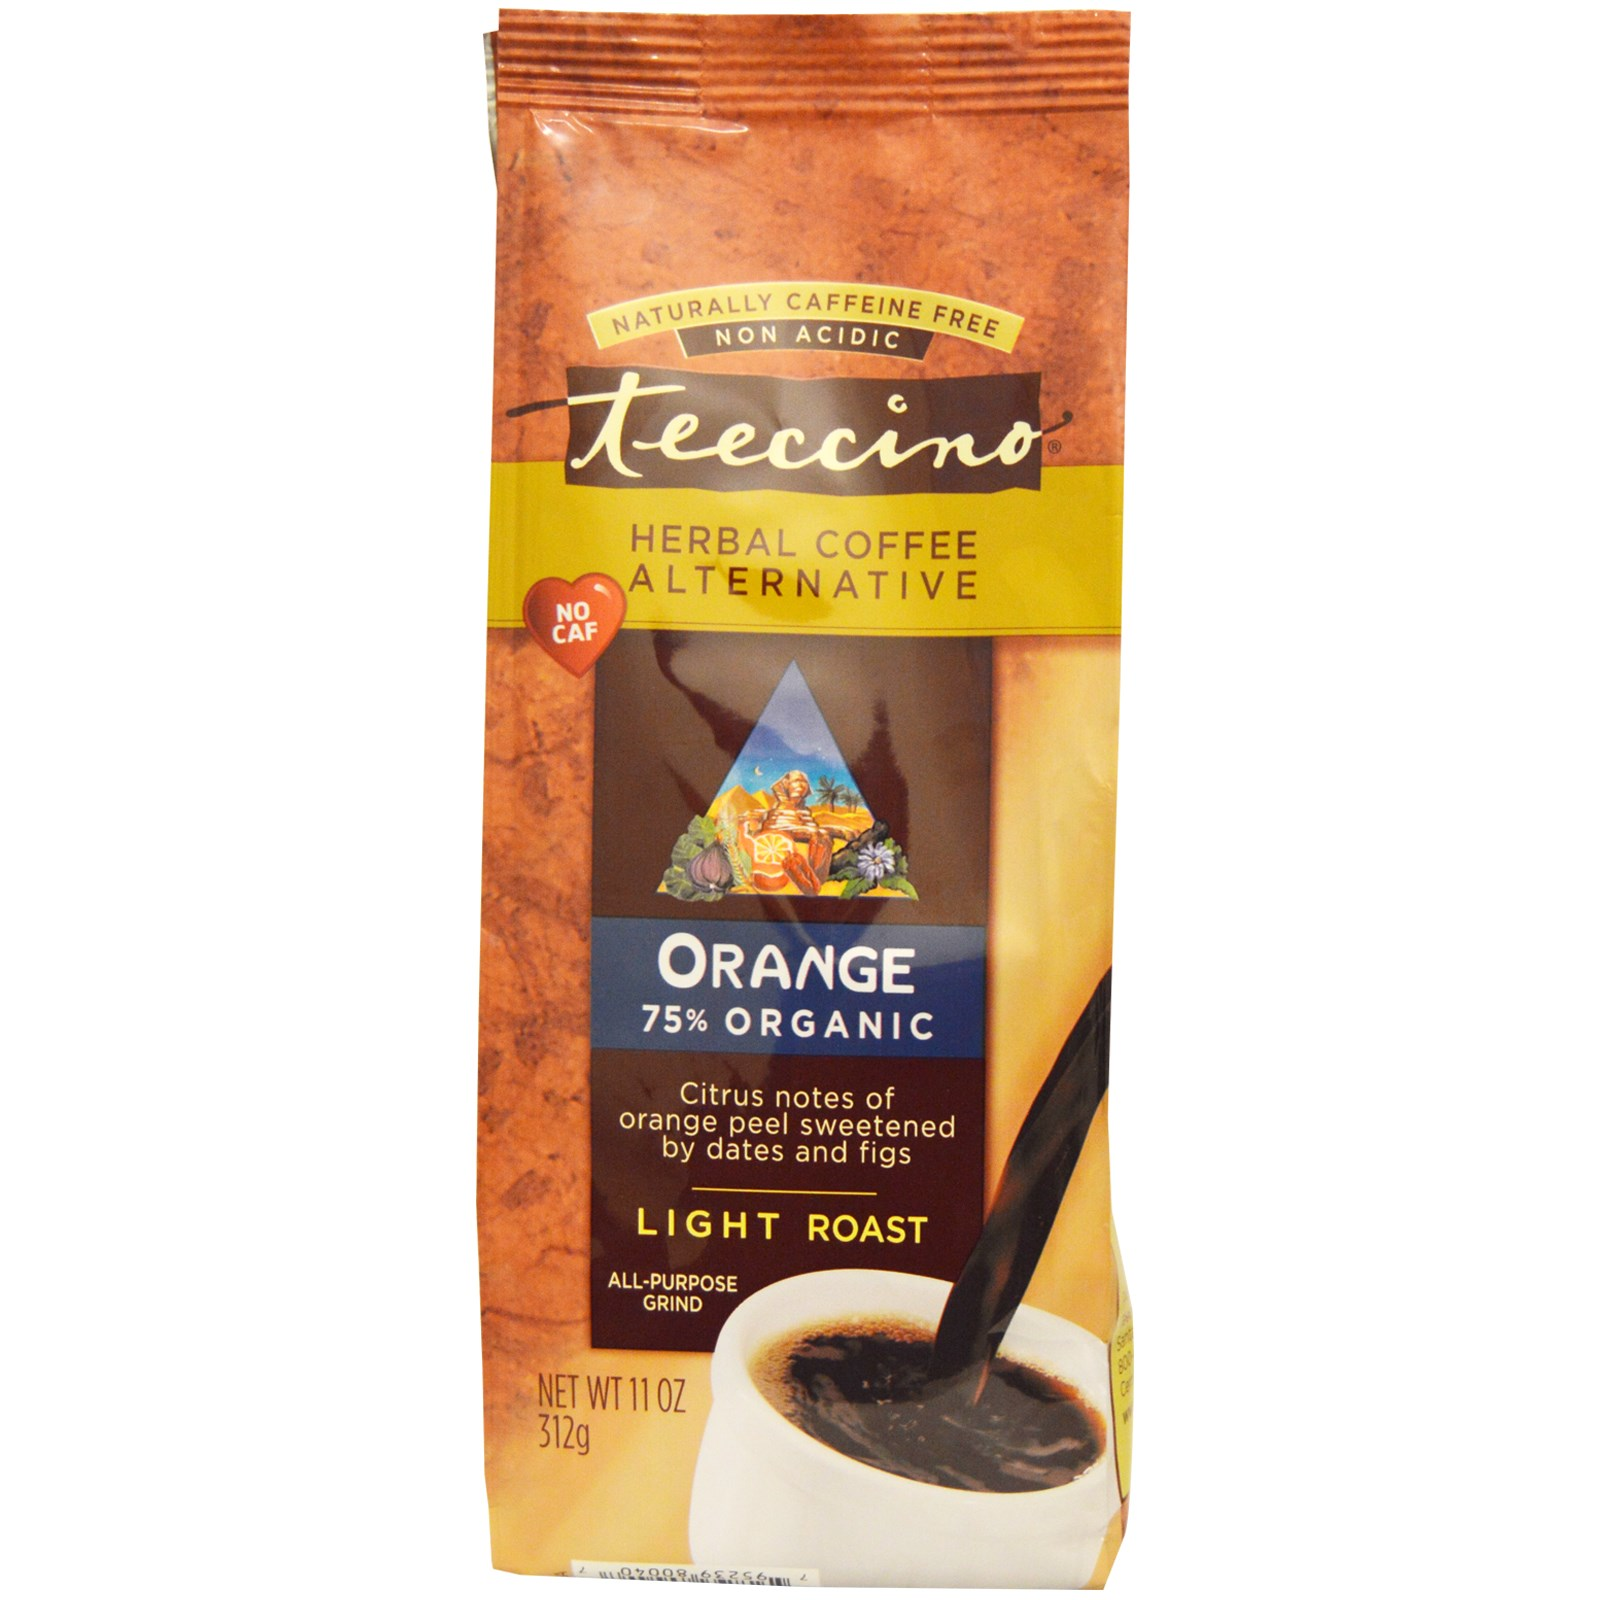 Teeccino, Herbal Coffee Alternative, Orange, Light Roast, Caffeine Free, 11 oz (pack of 4)